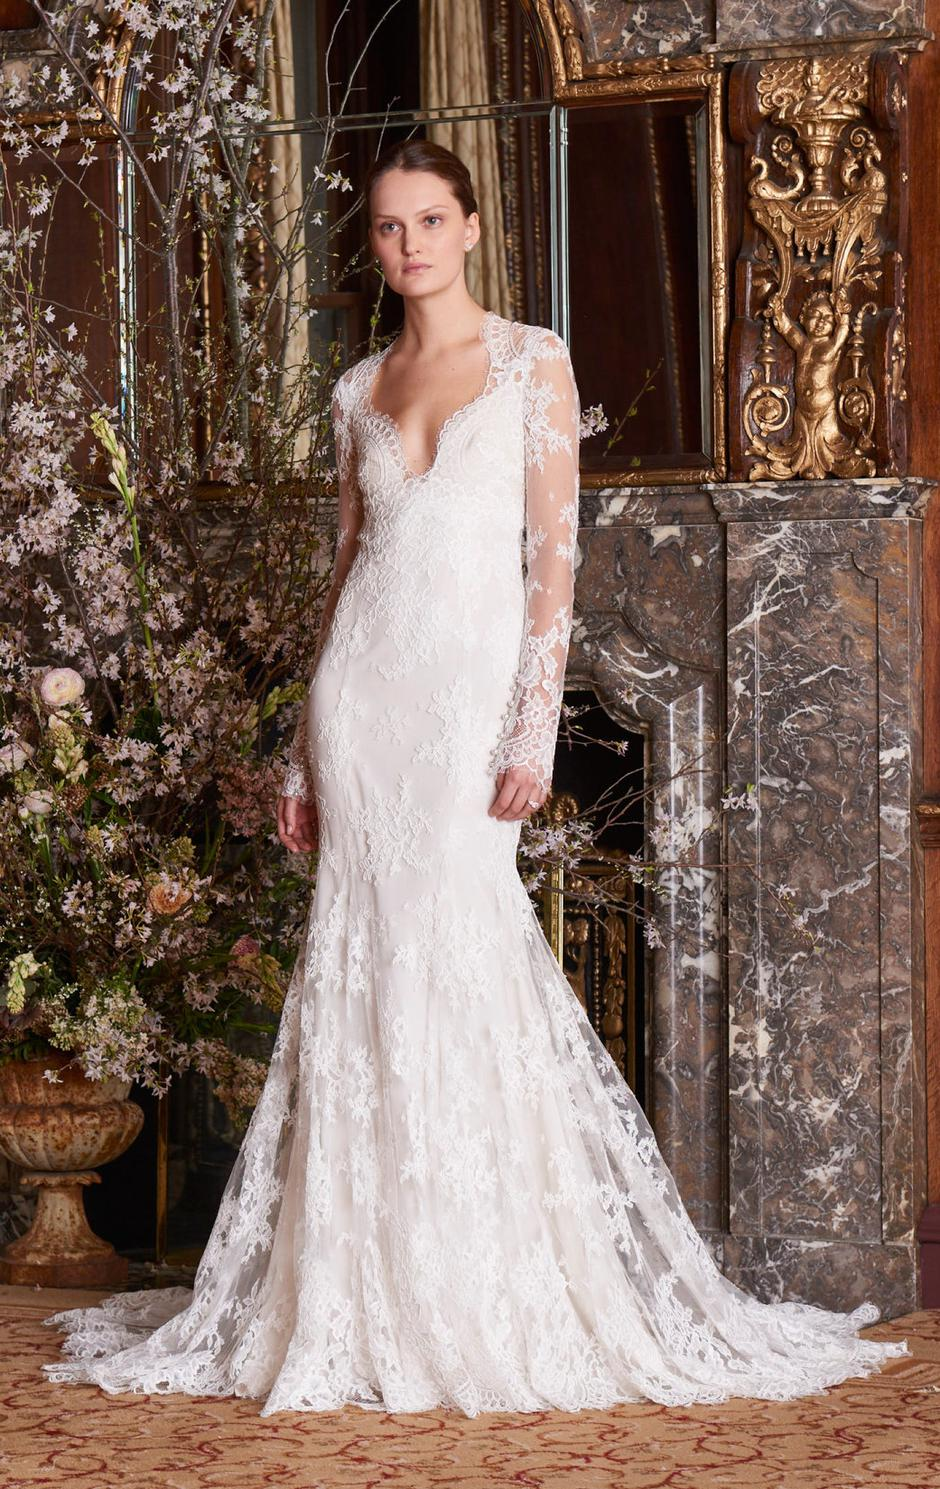 ... Are Added With Sheer Bodices And Deep Plunging Necklines, Long Lace  Appliqué Sleeves Reminiscent Of One Kate Middletonu0027s Now Iconic 2011 Wedding  Dress.